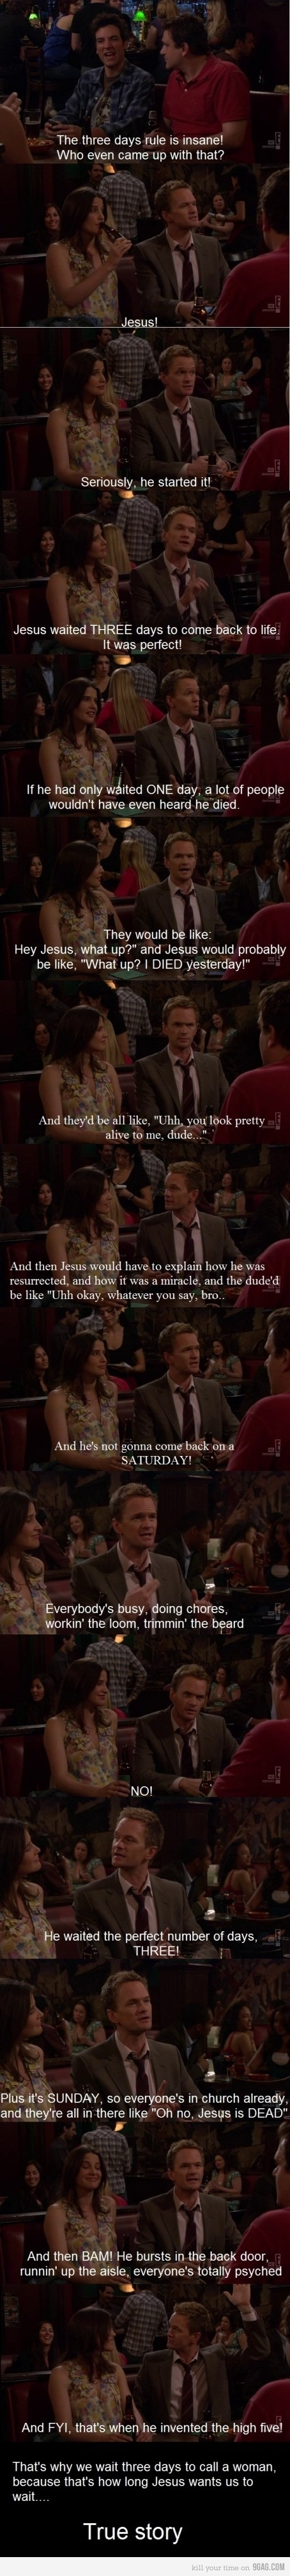 Barney Stinson on the 3 day rule. HIMYM is awesome!